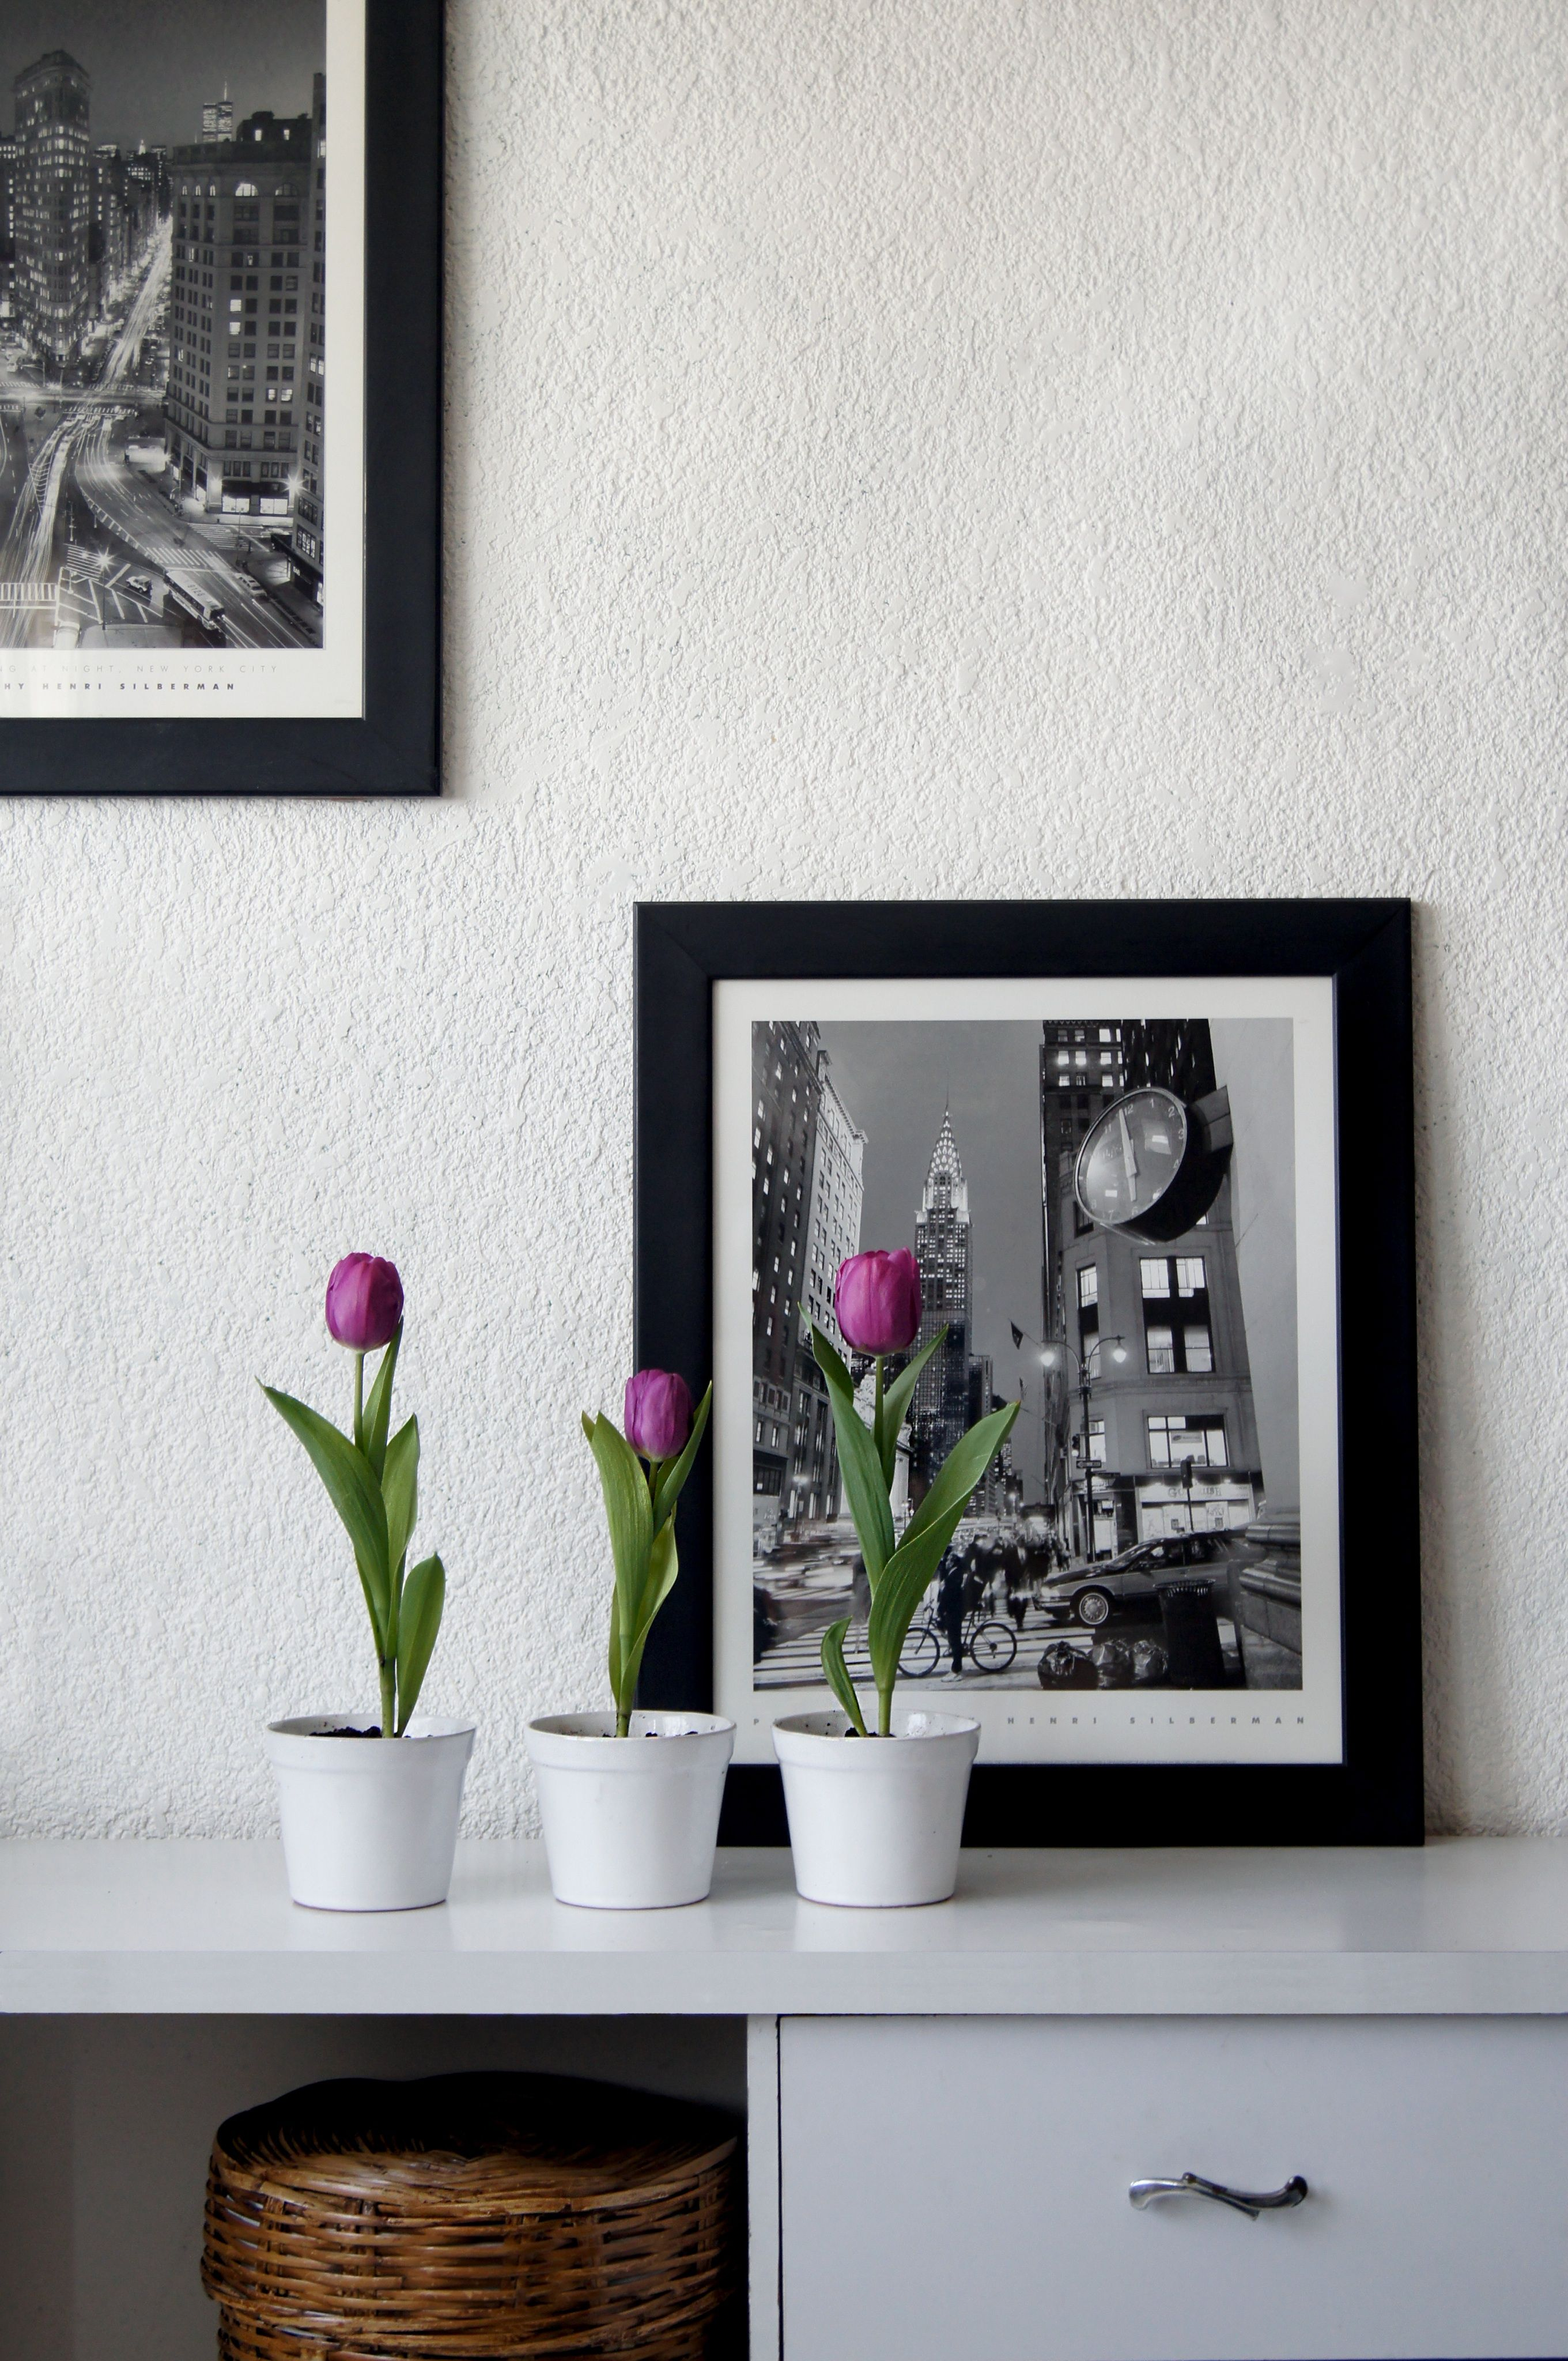 The creation of beauty is art. -Ralph Waldo Emerson- #flower #flowerpower #interiordesign #design #tulips